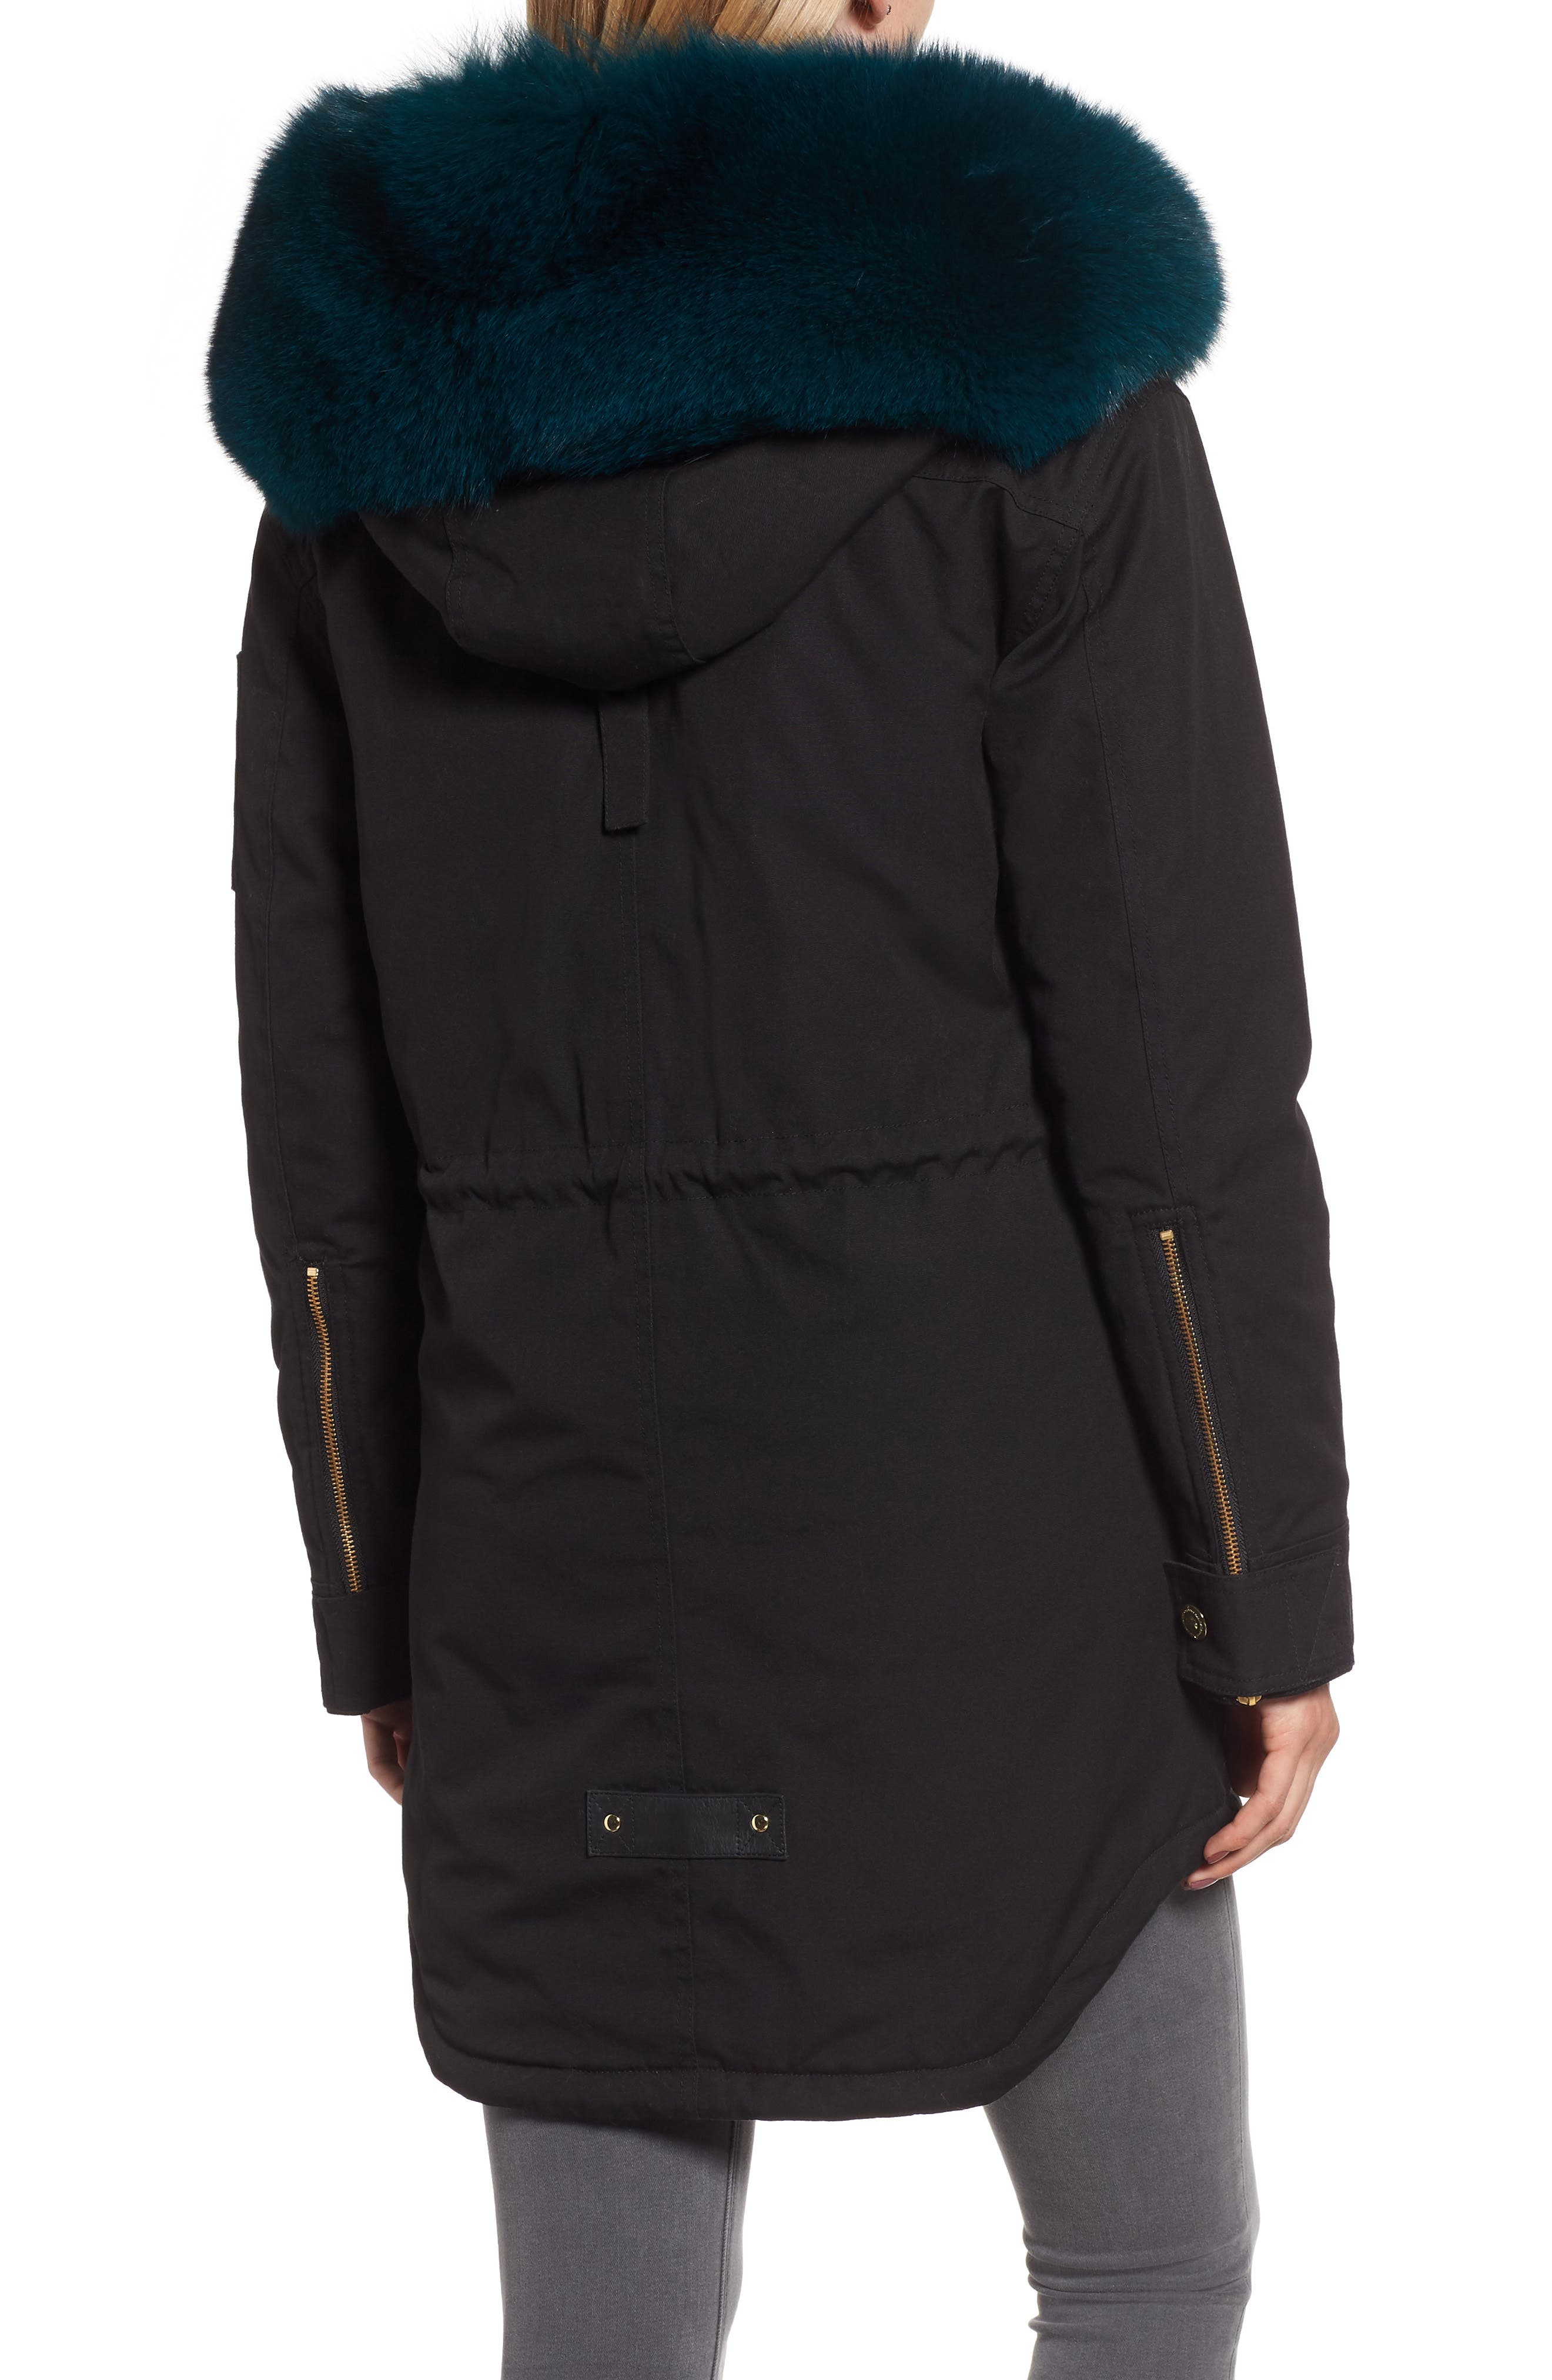 Foxy Stellar Parka with Genuine Rabbit Fur & Genuine Fox Fur,                             Alternate thumbnail 2, color,                             BLACK/ TEAL/ SKY BLUE/ GREEN